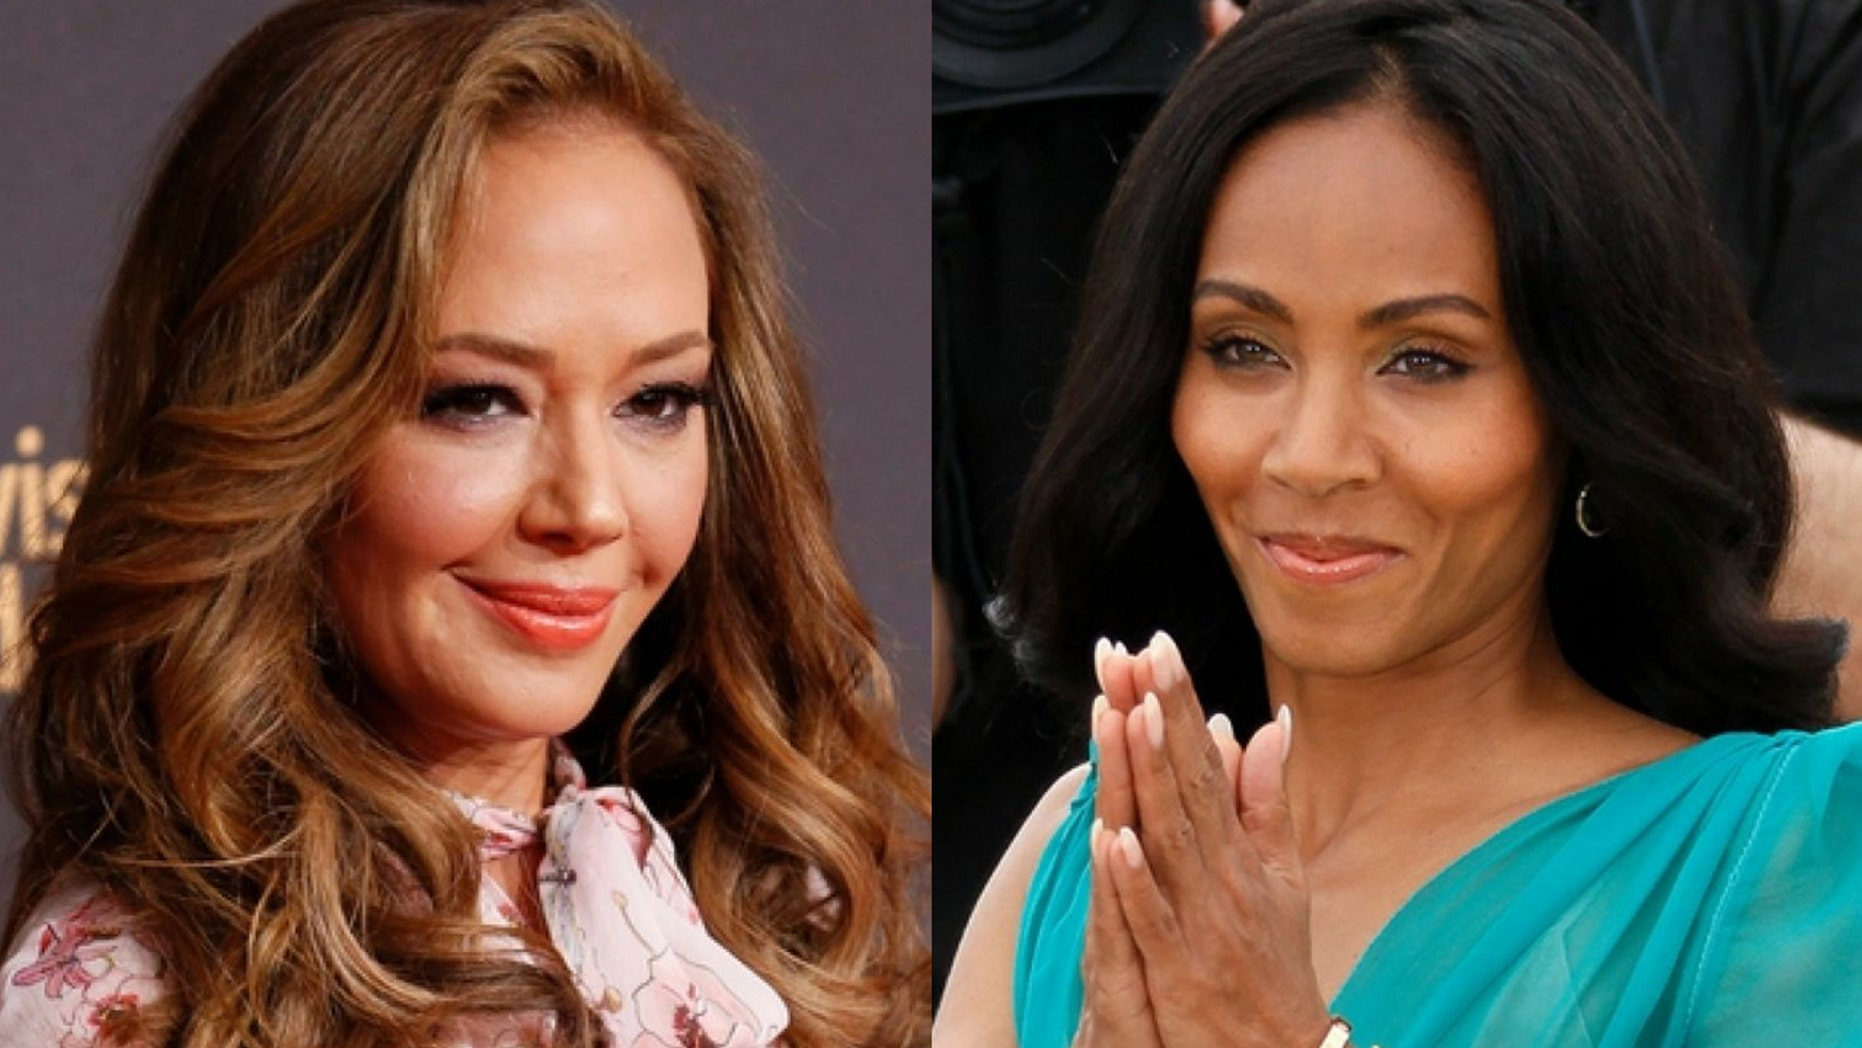 Leah Remini and Jada Pinkett Smith have made amends after a very public feud last year.